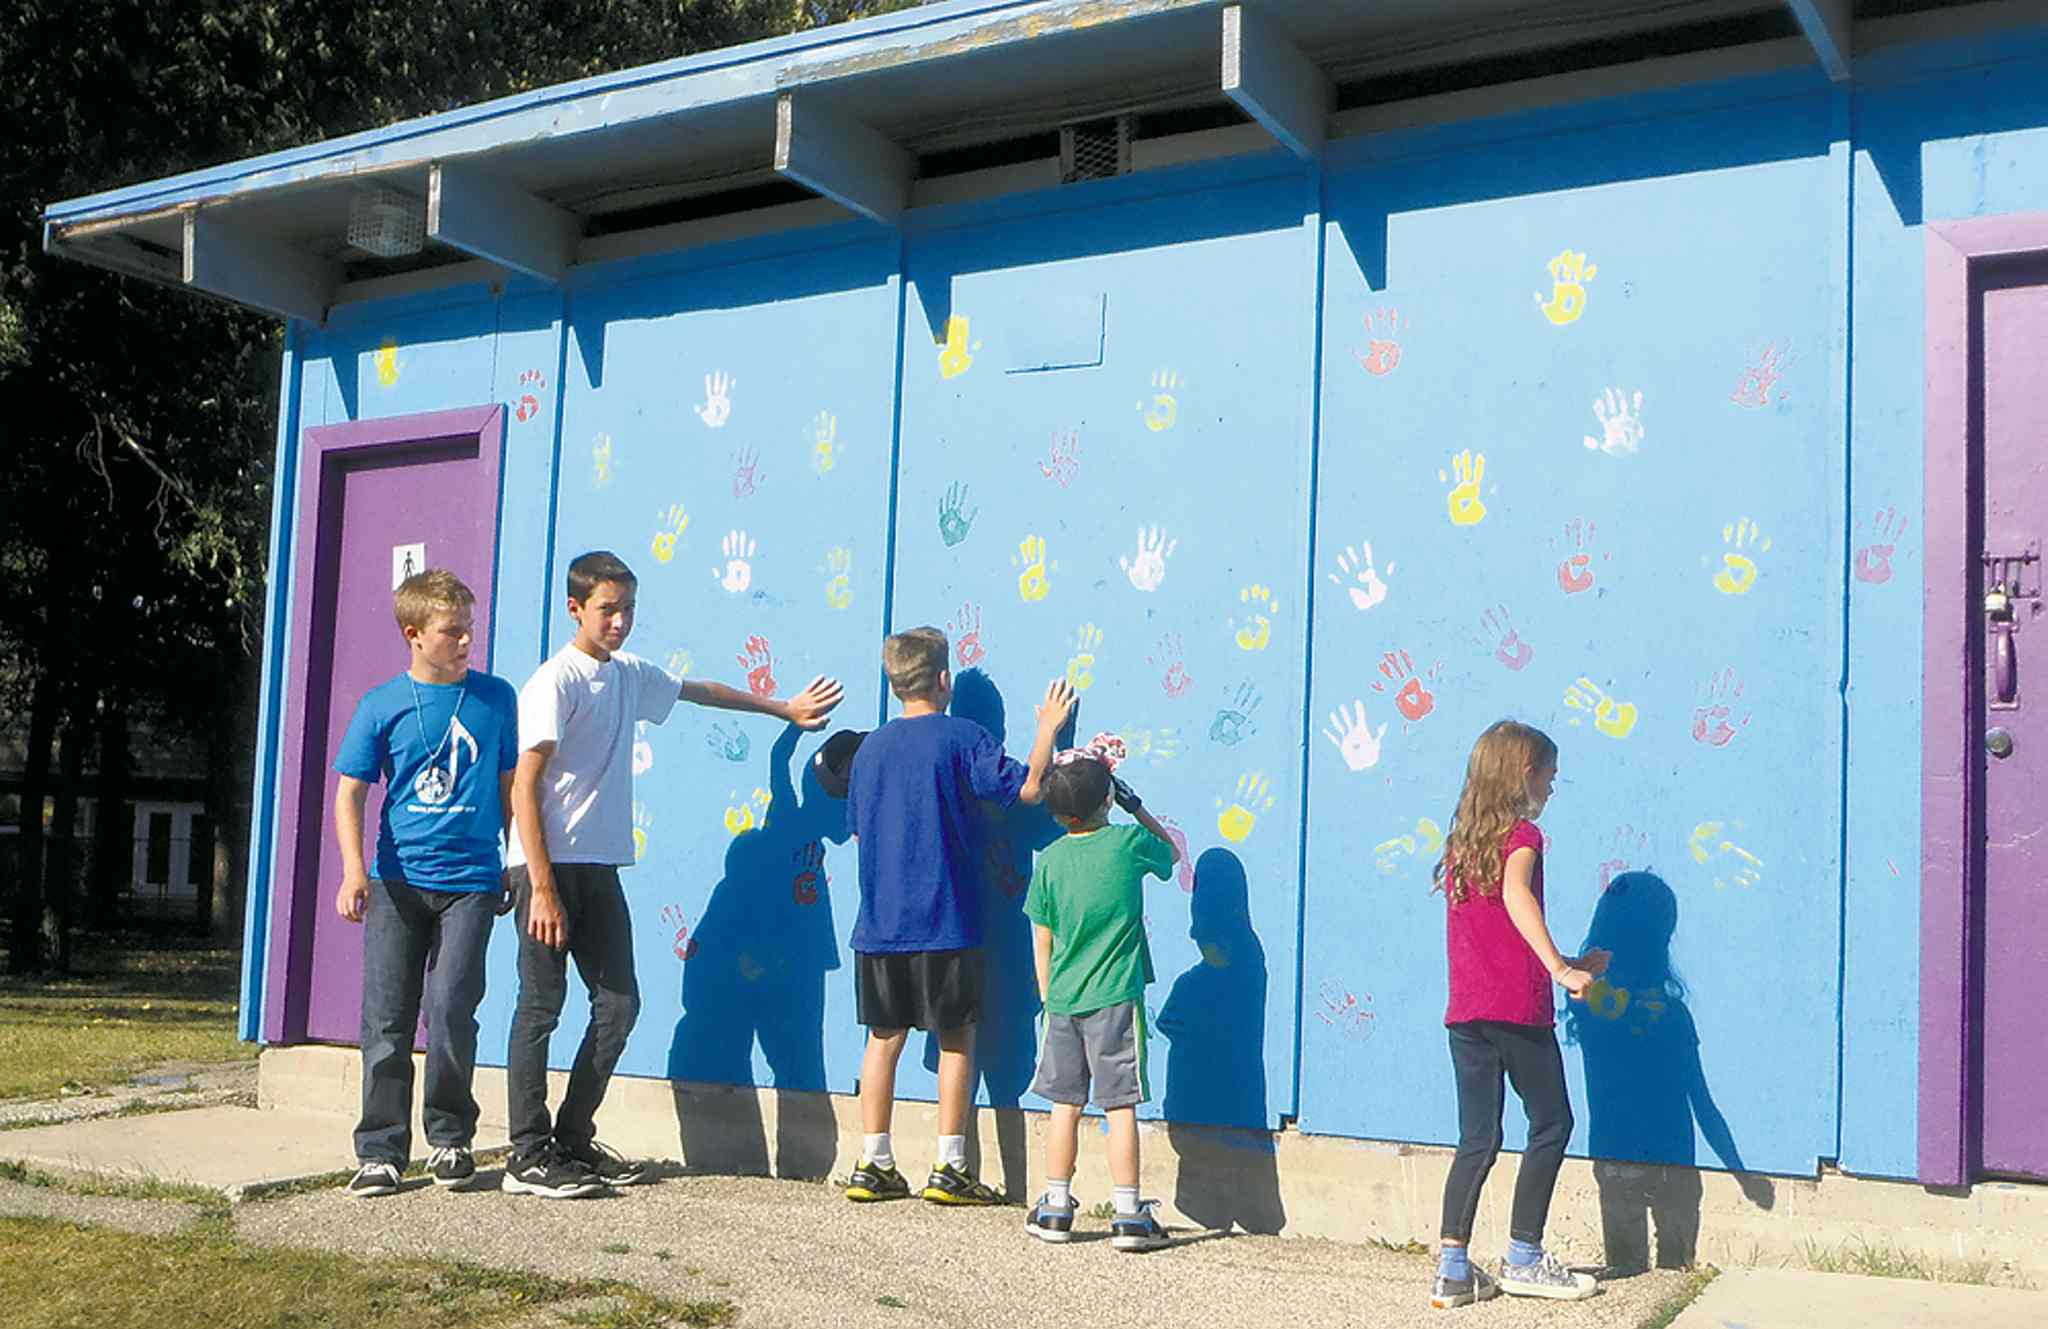 Westwood kids check out the handprints and images now decorating the changing room building at John Steel Park.